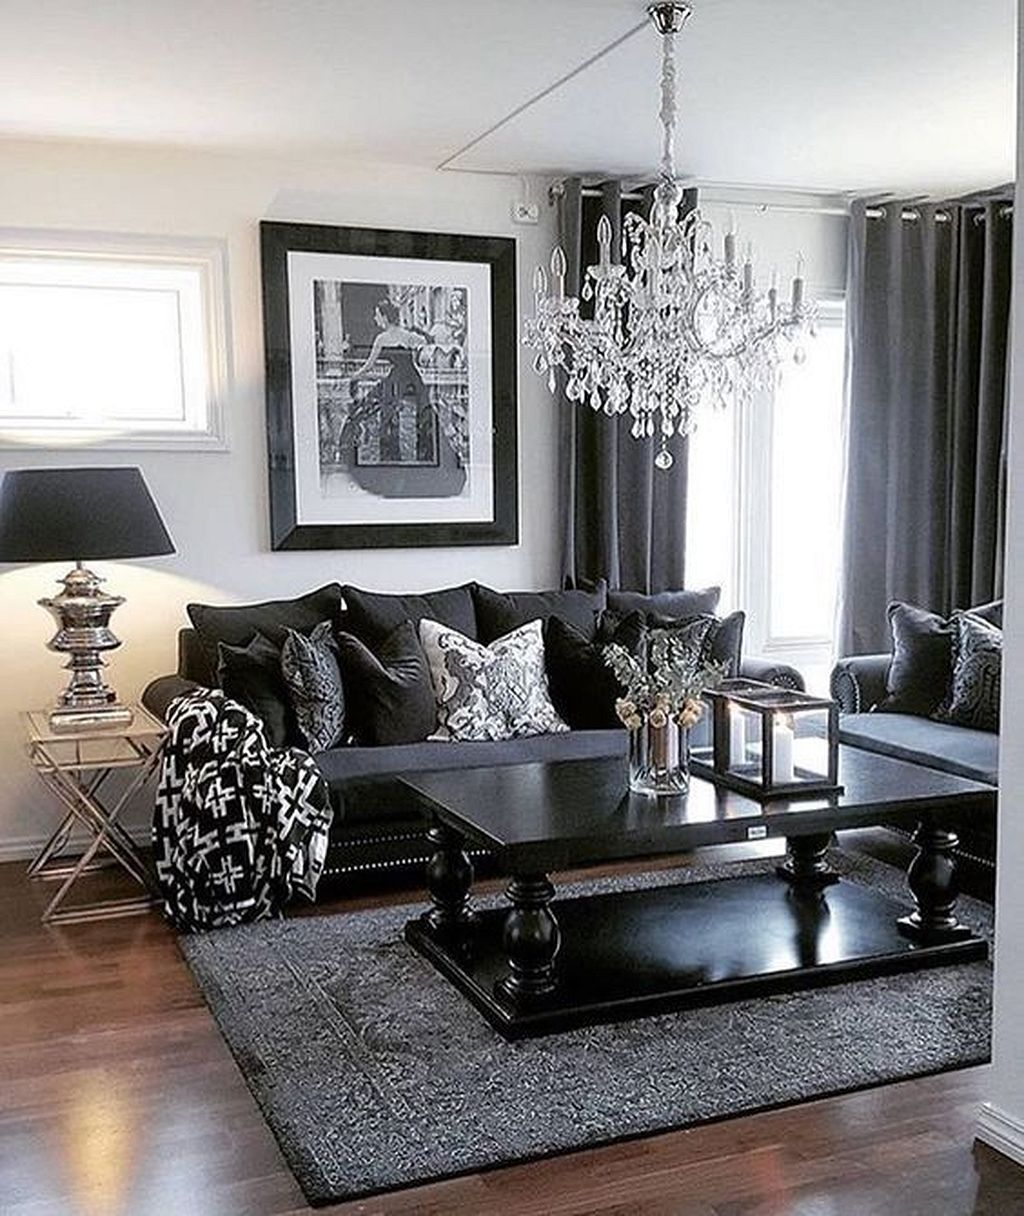 134 cozy glam living room ideas living room wohnzimmer - Black accessories for living room ...